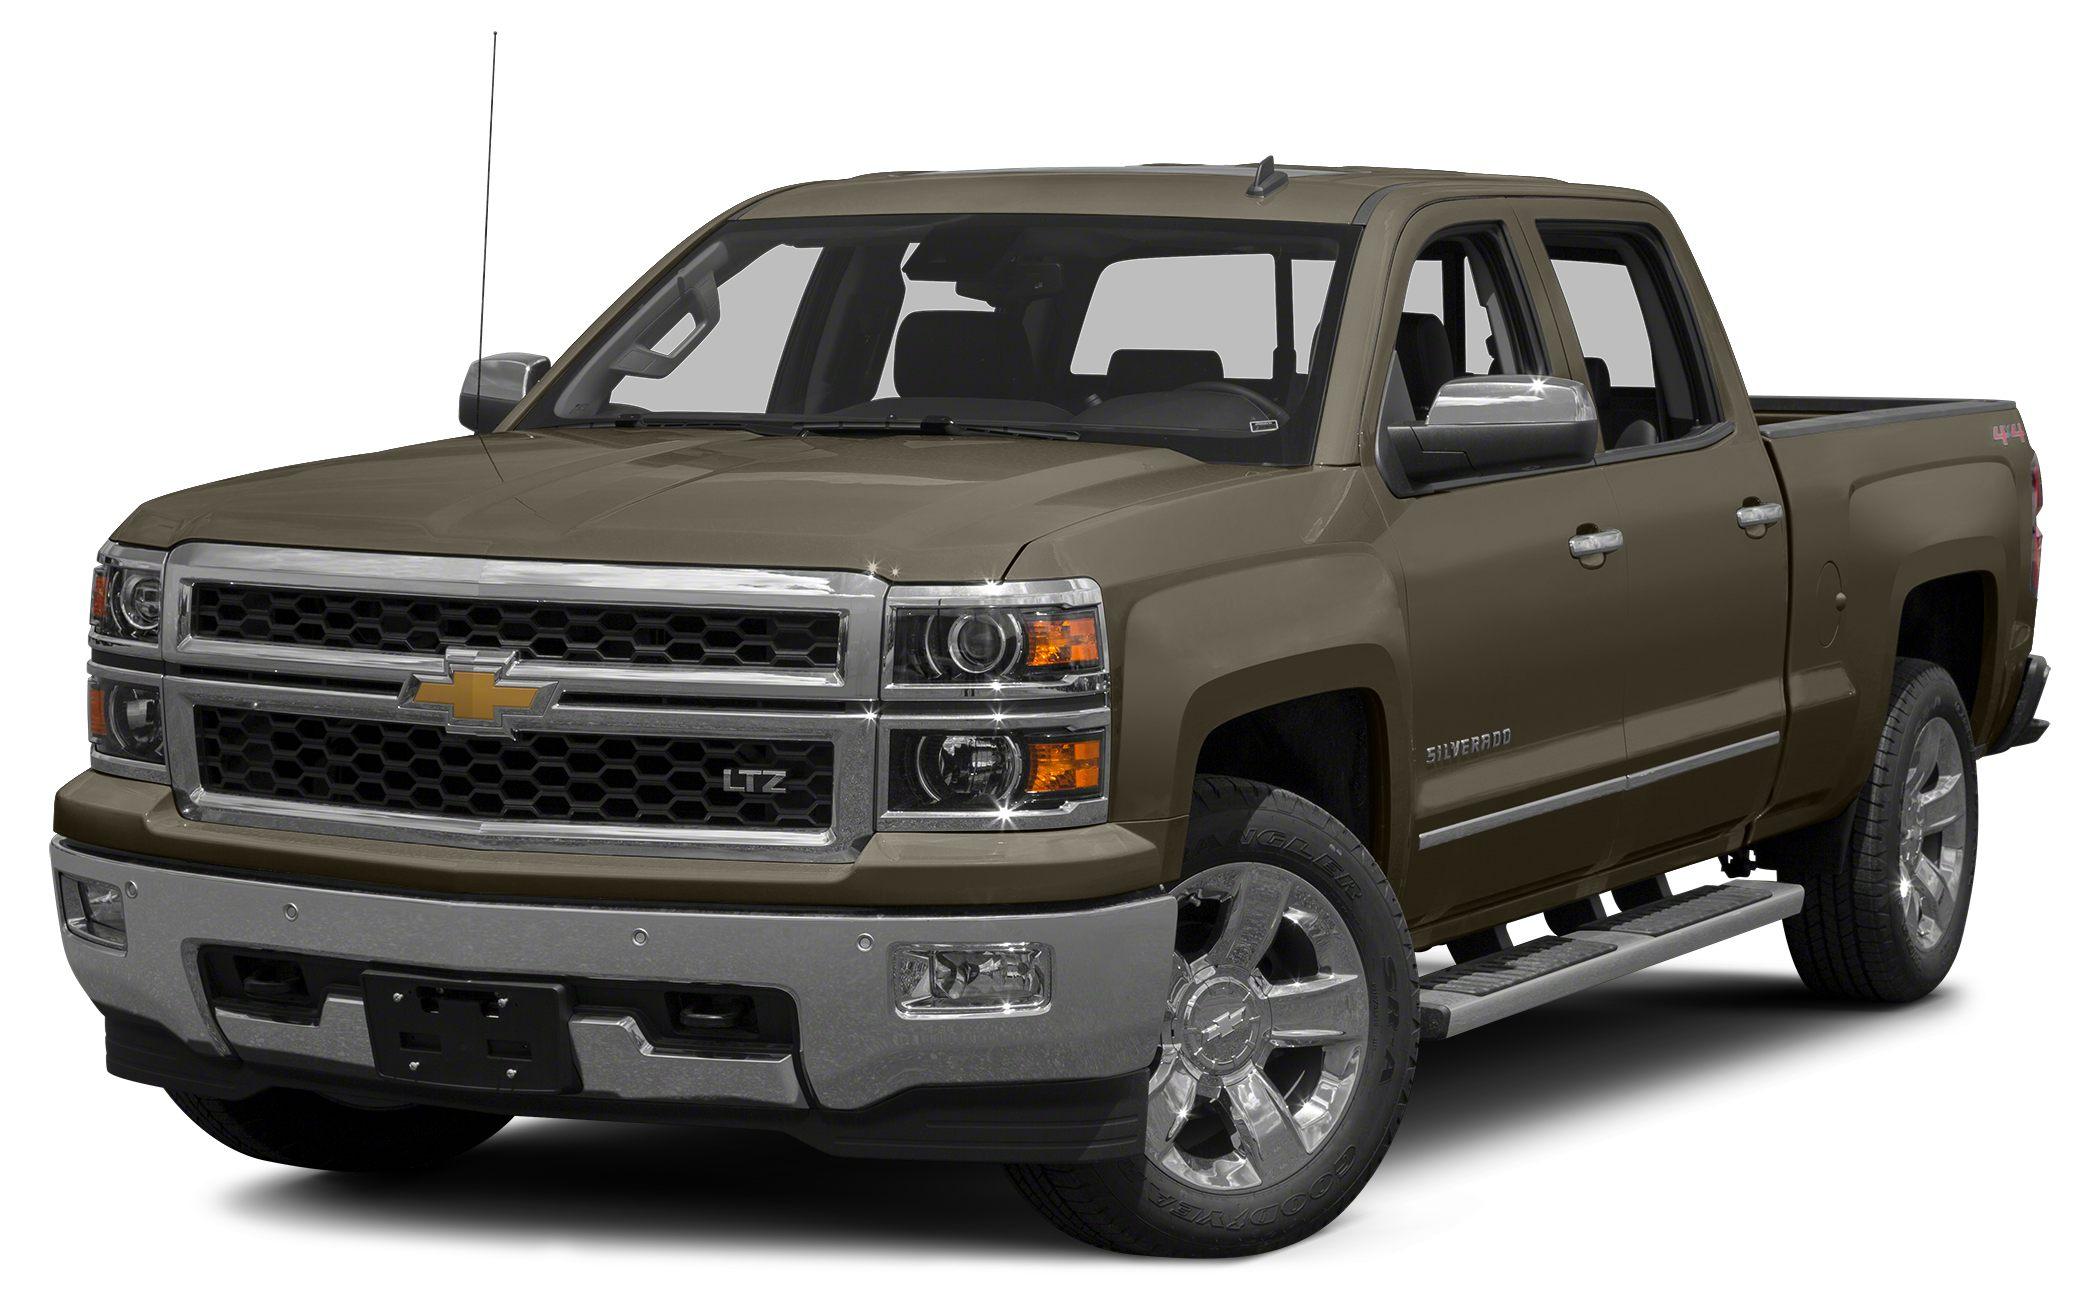 2015 Chevrolet Silverado 1500 1LT Miles 25Color Brownstone Metallic Stock 000C5507 VIN 3GCUK